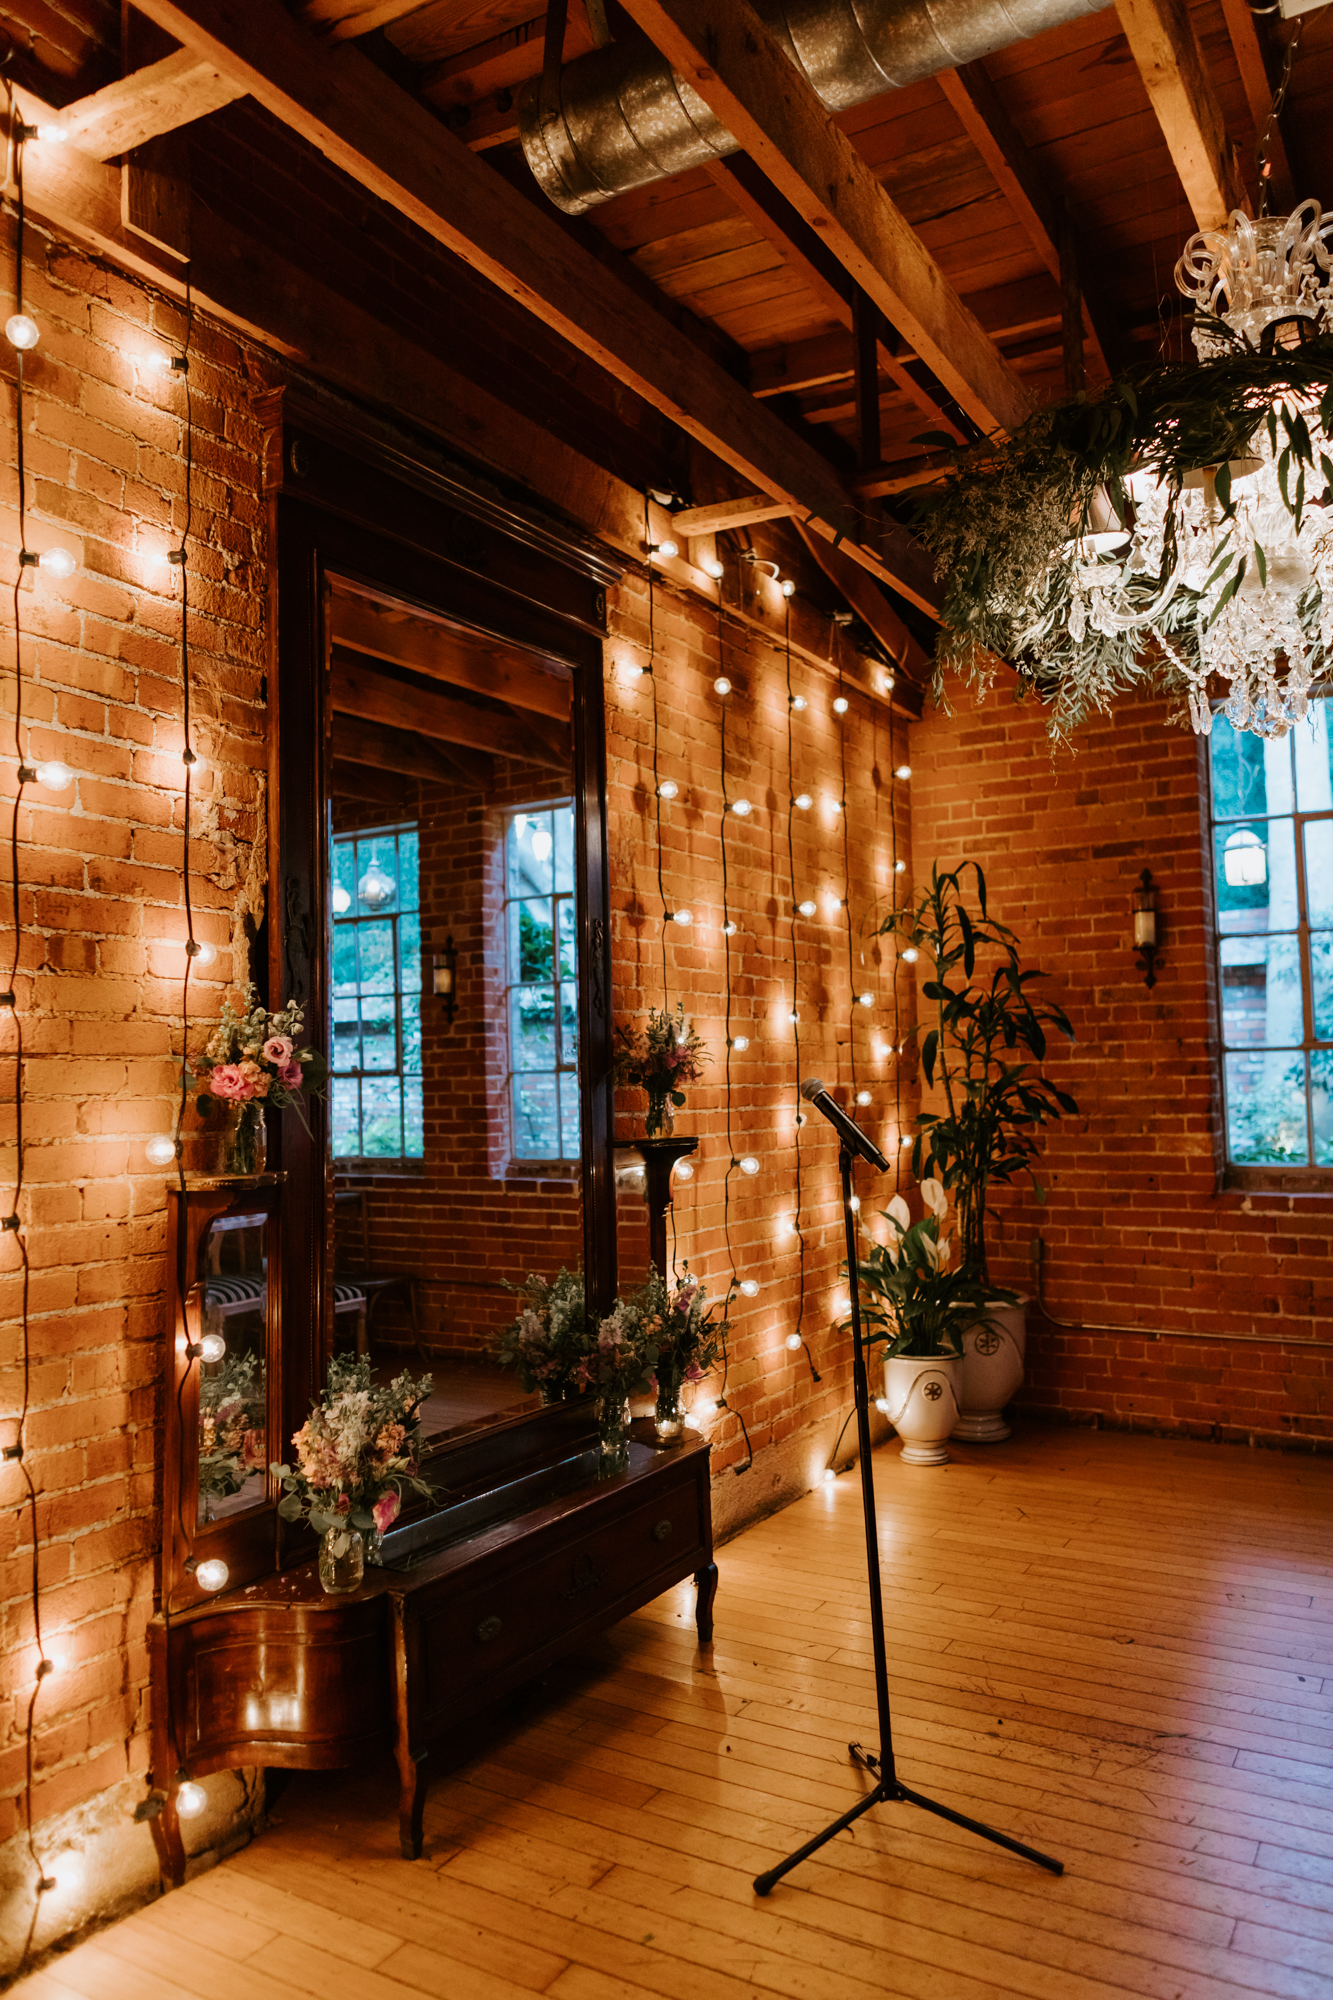 Romantic edison bulb ceremony detail | Carondelet House Wedding in Downtown Los Angeles | Los Angeles Wedding Photographer |Tida Svy Photography | www.tidasvy.com